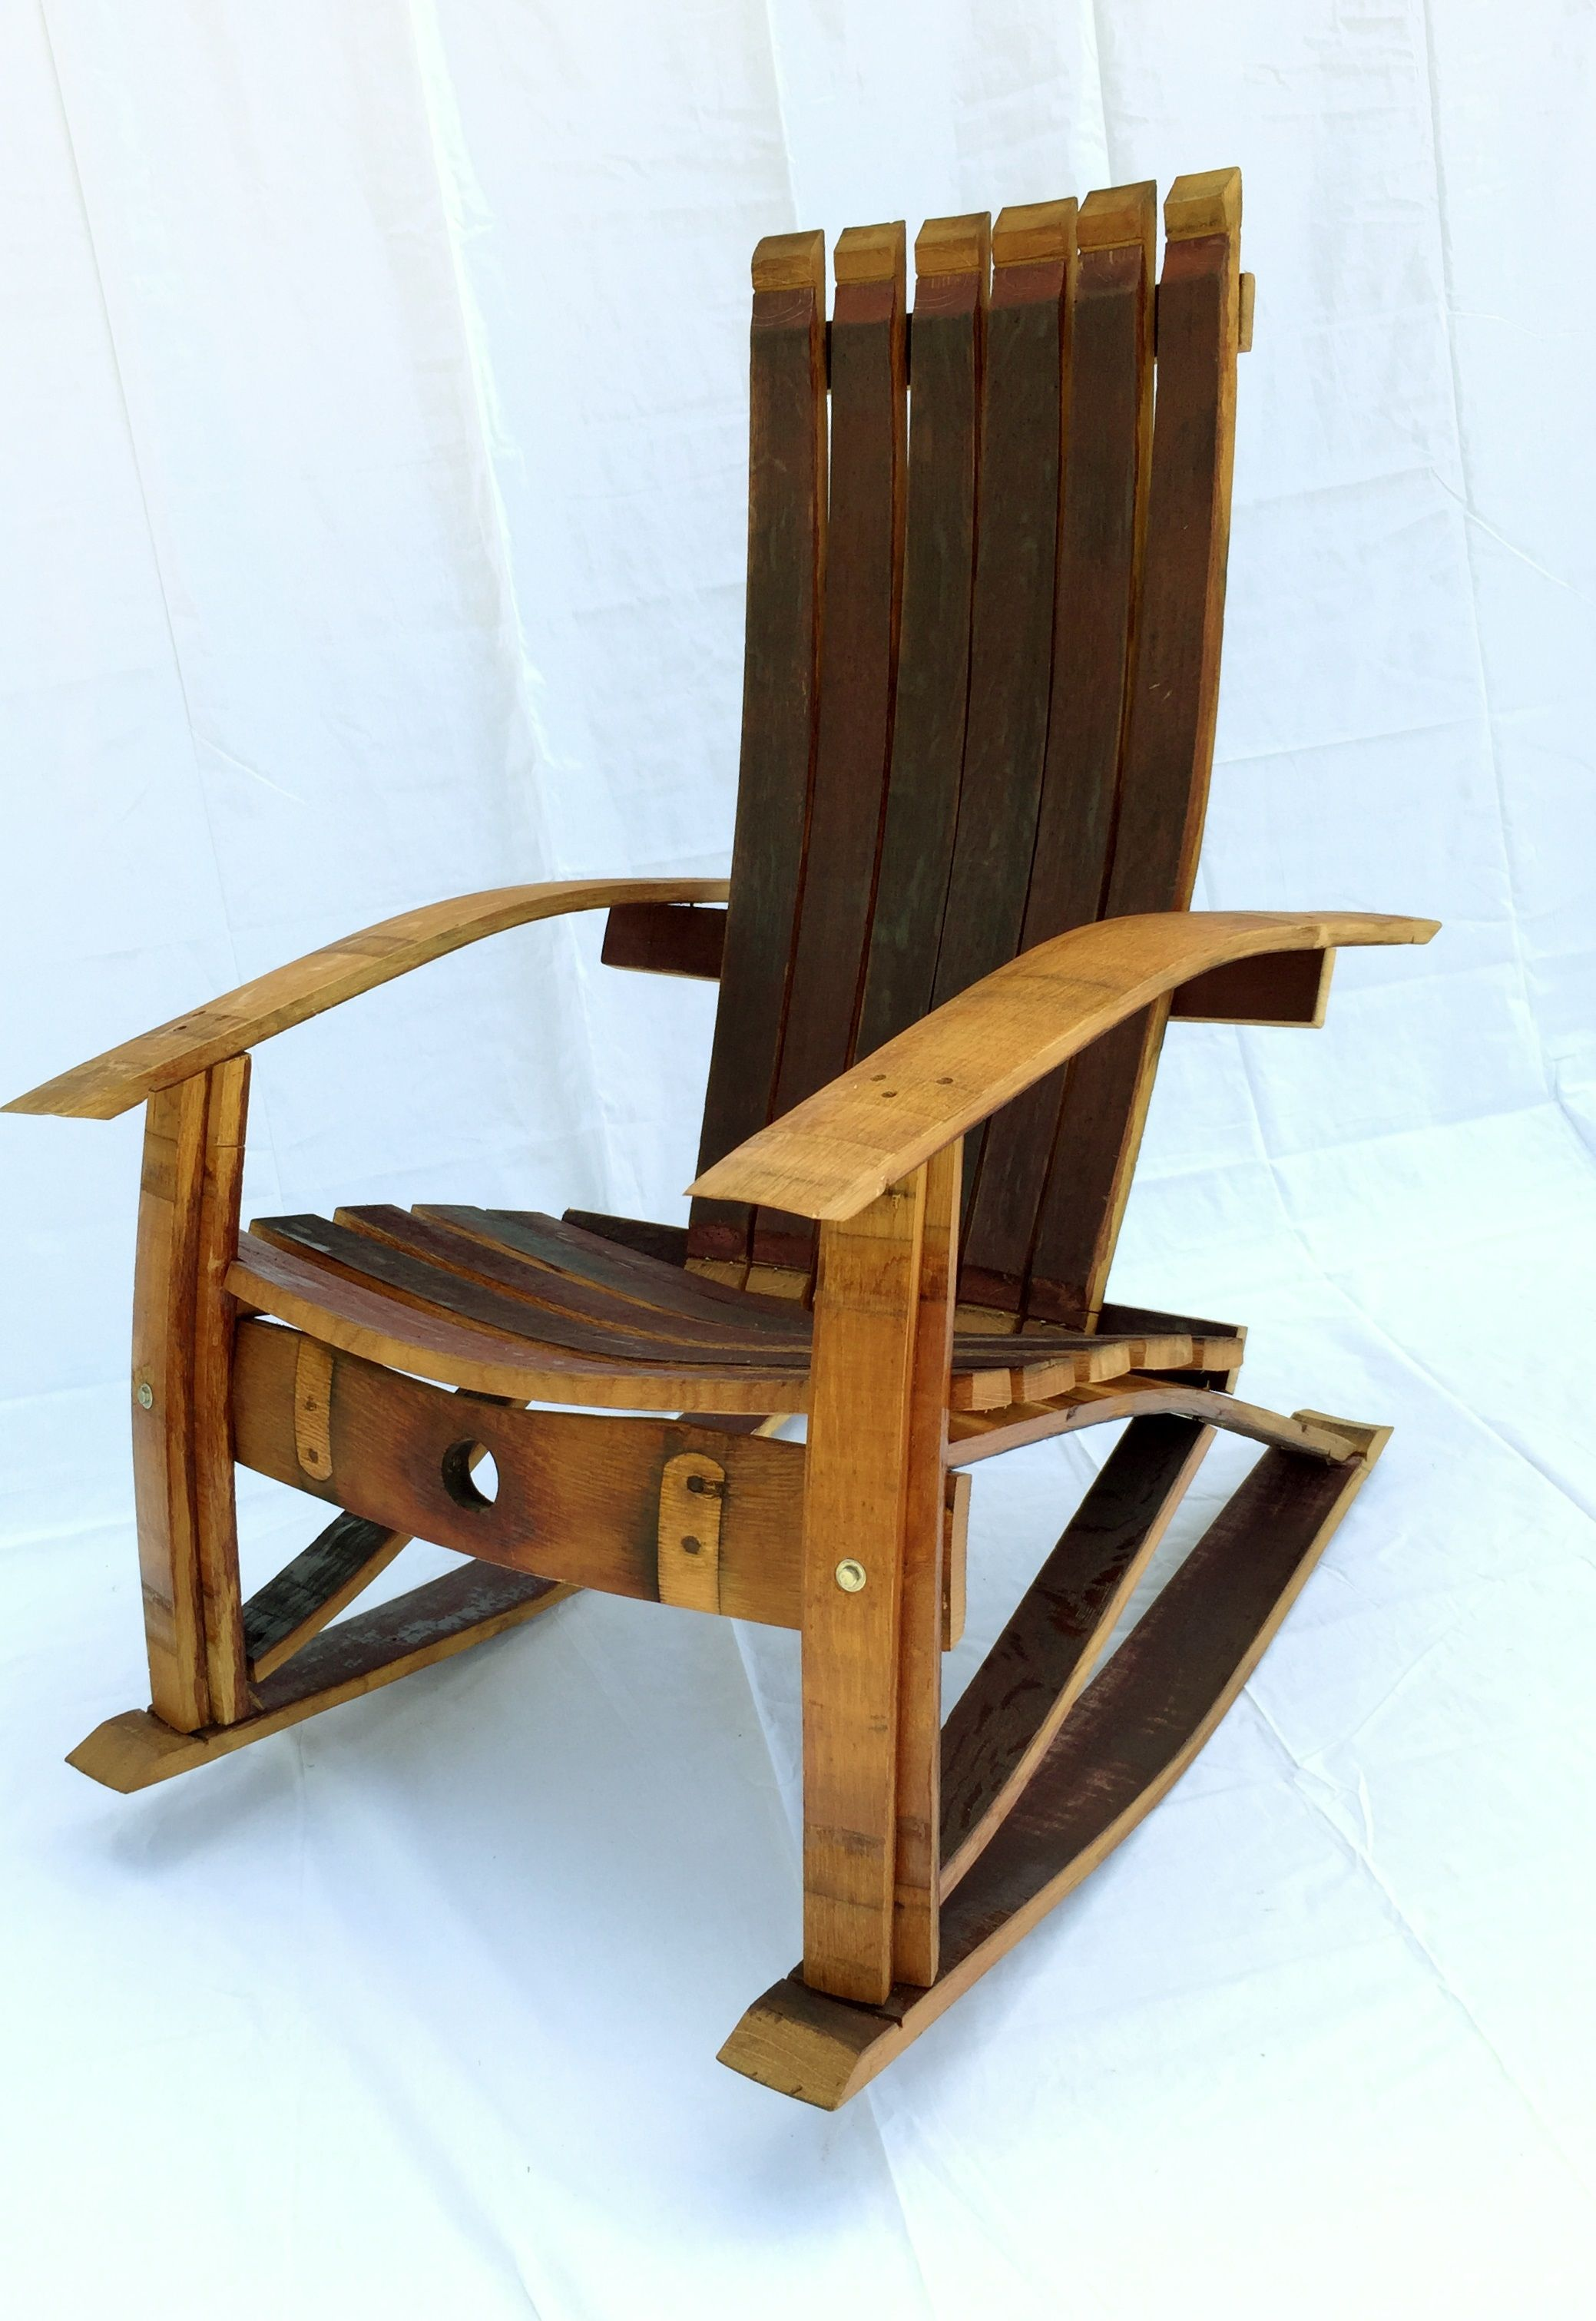 Diy Wine Barrel Rocking Chair Wood Plans Very Simple To Build With